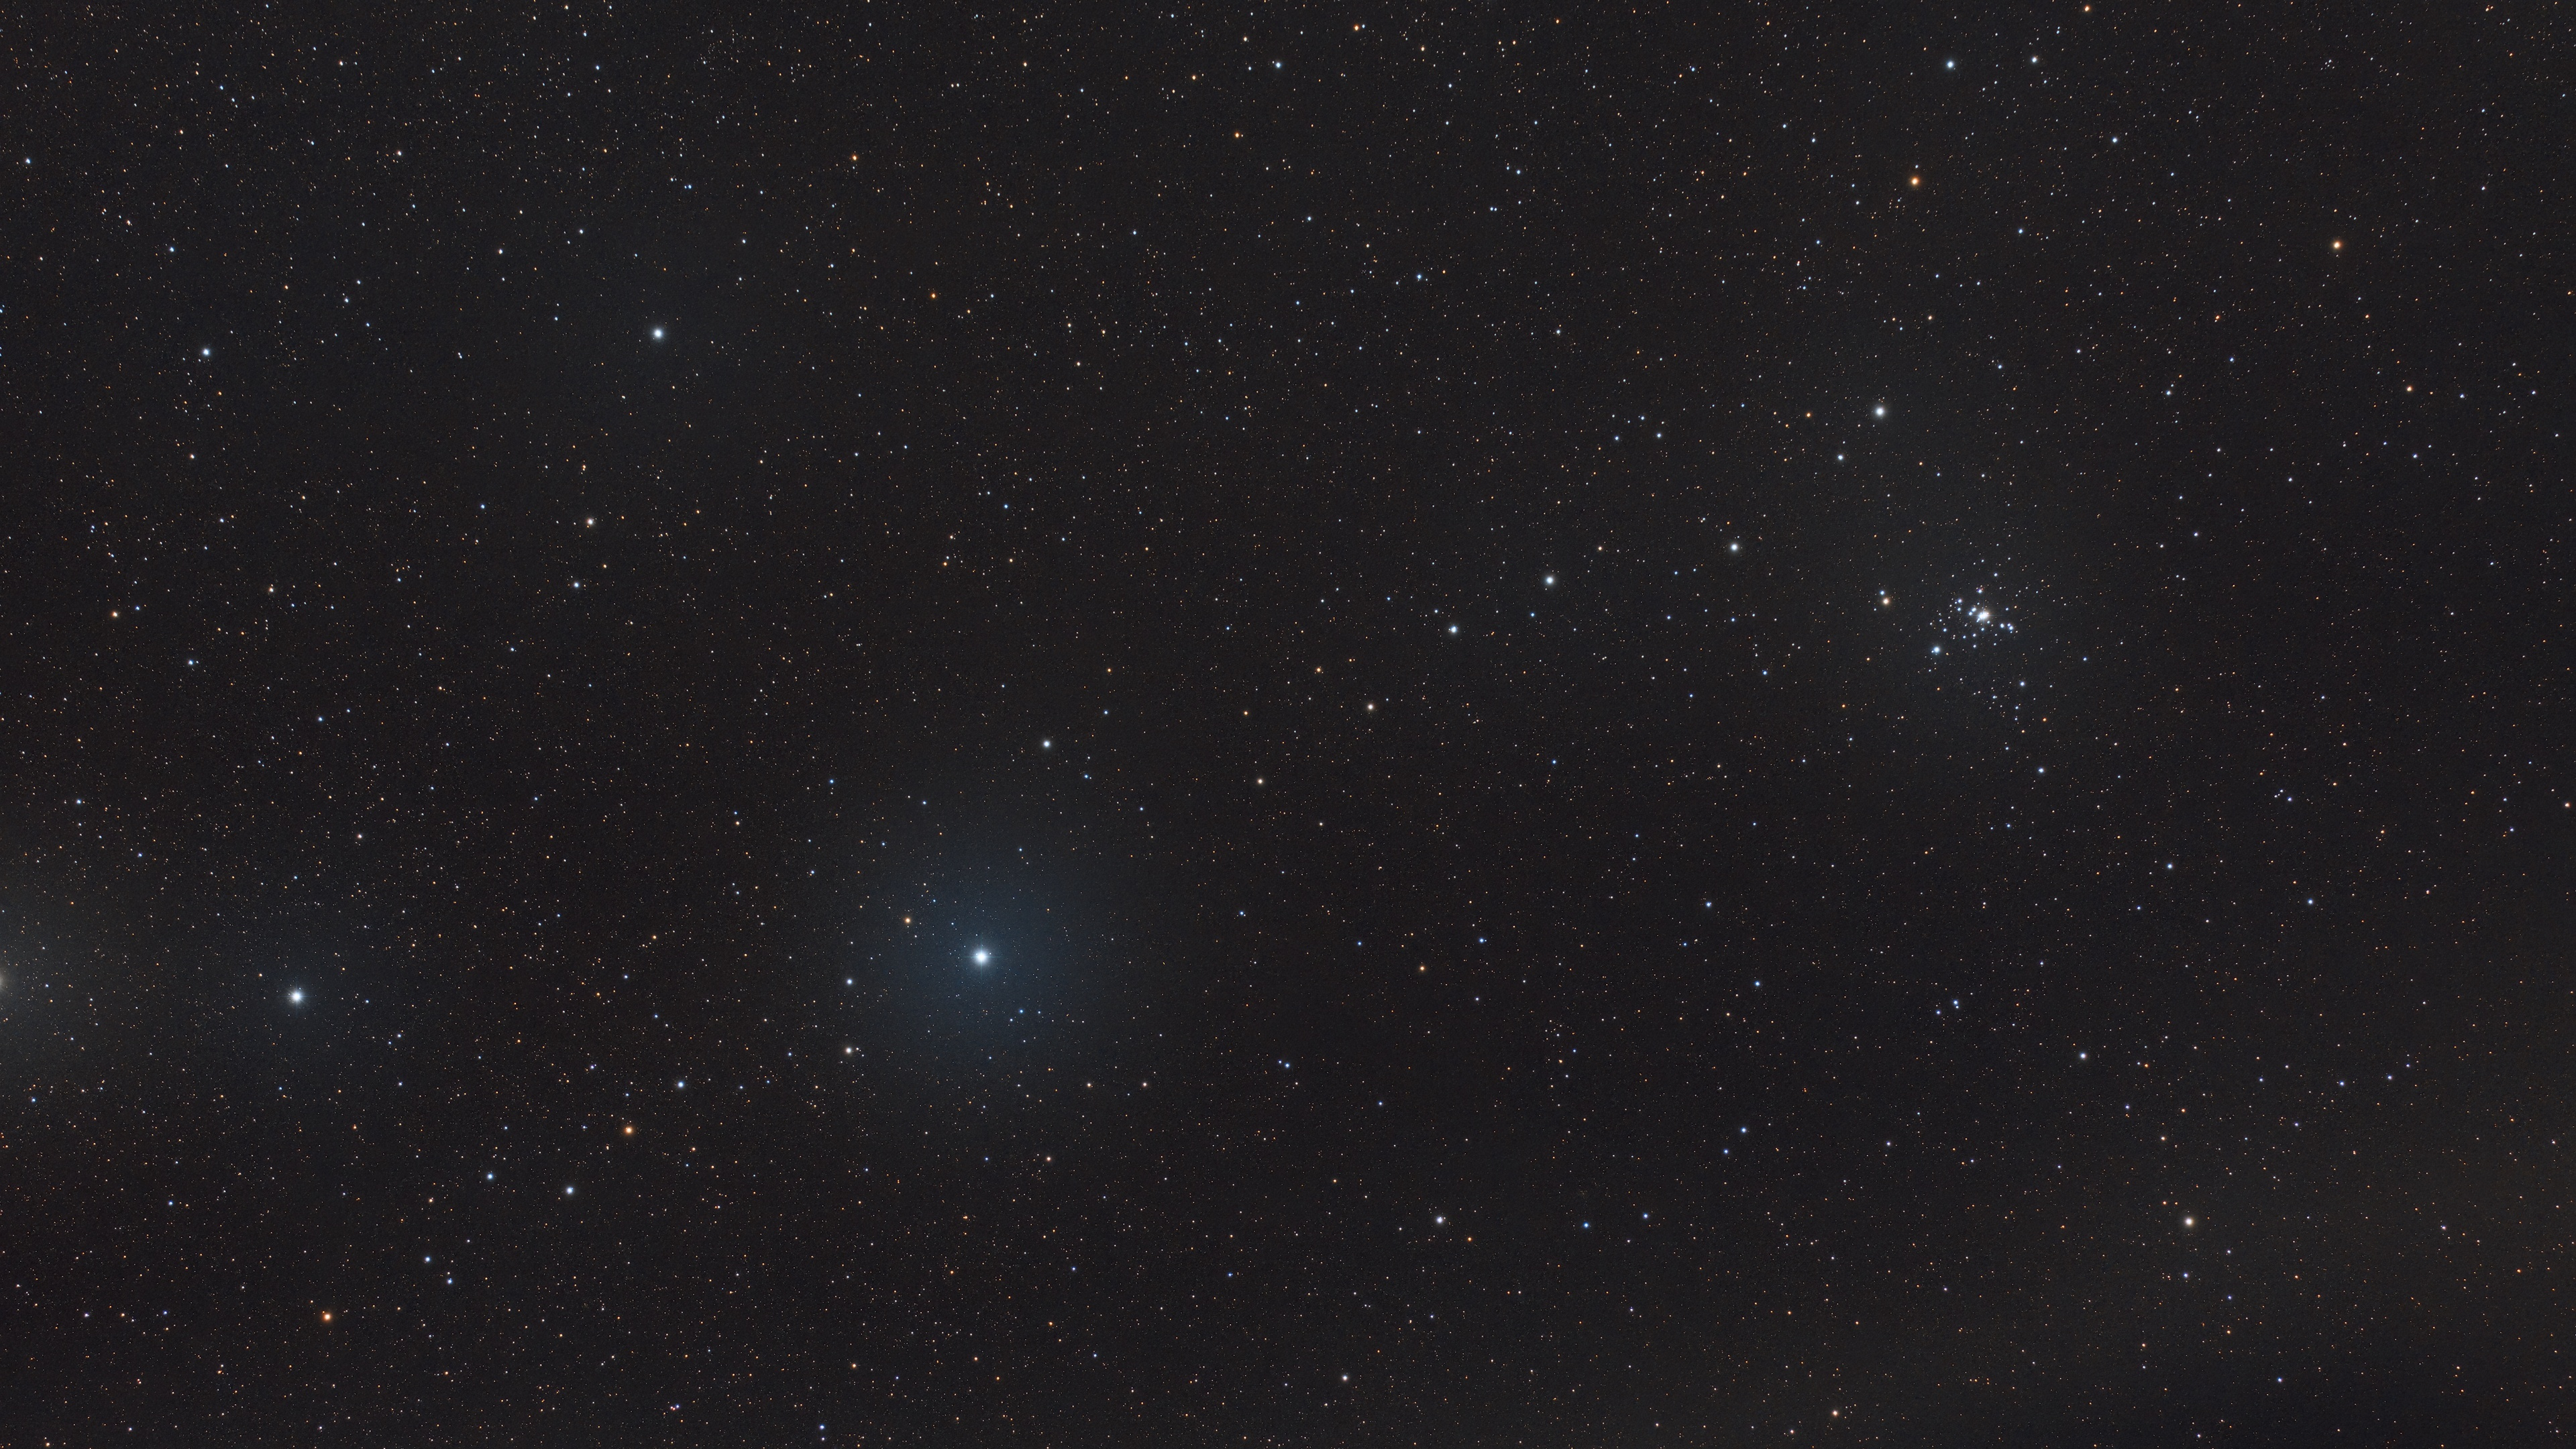 NGC1502-Kemble_FSQ106Red073x_60x30s_L-Pr